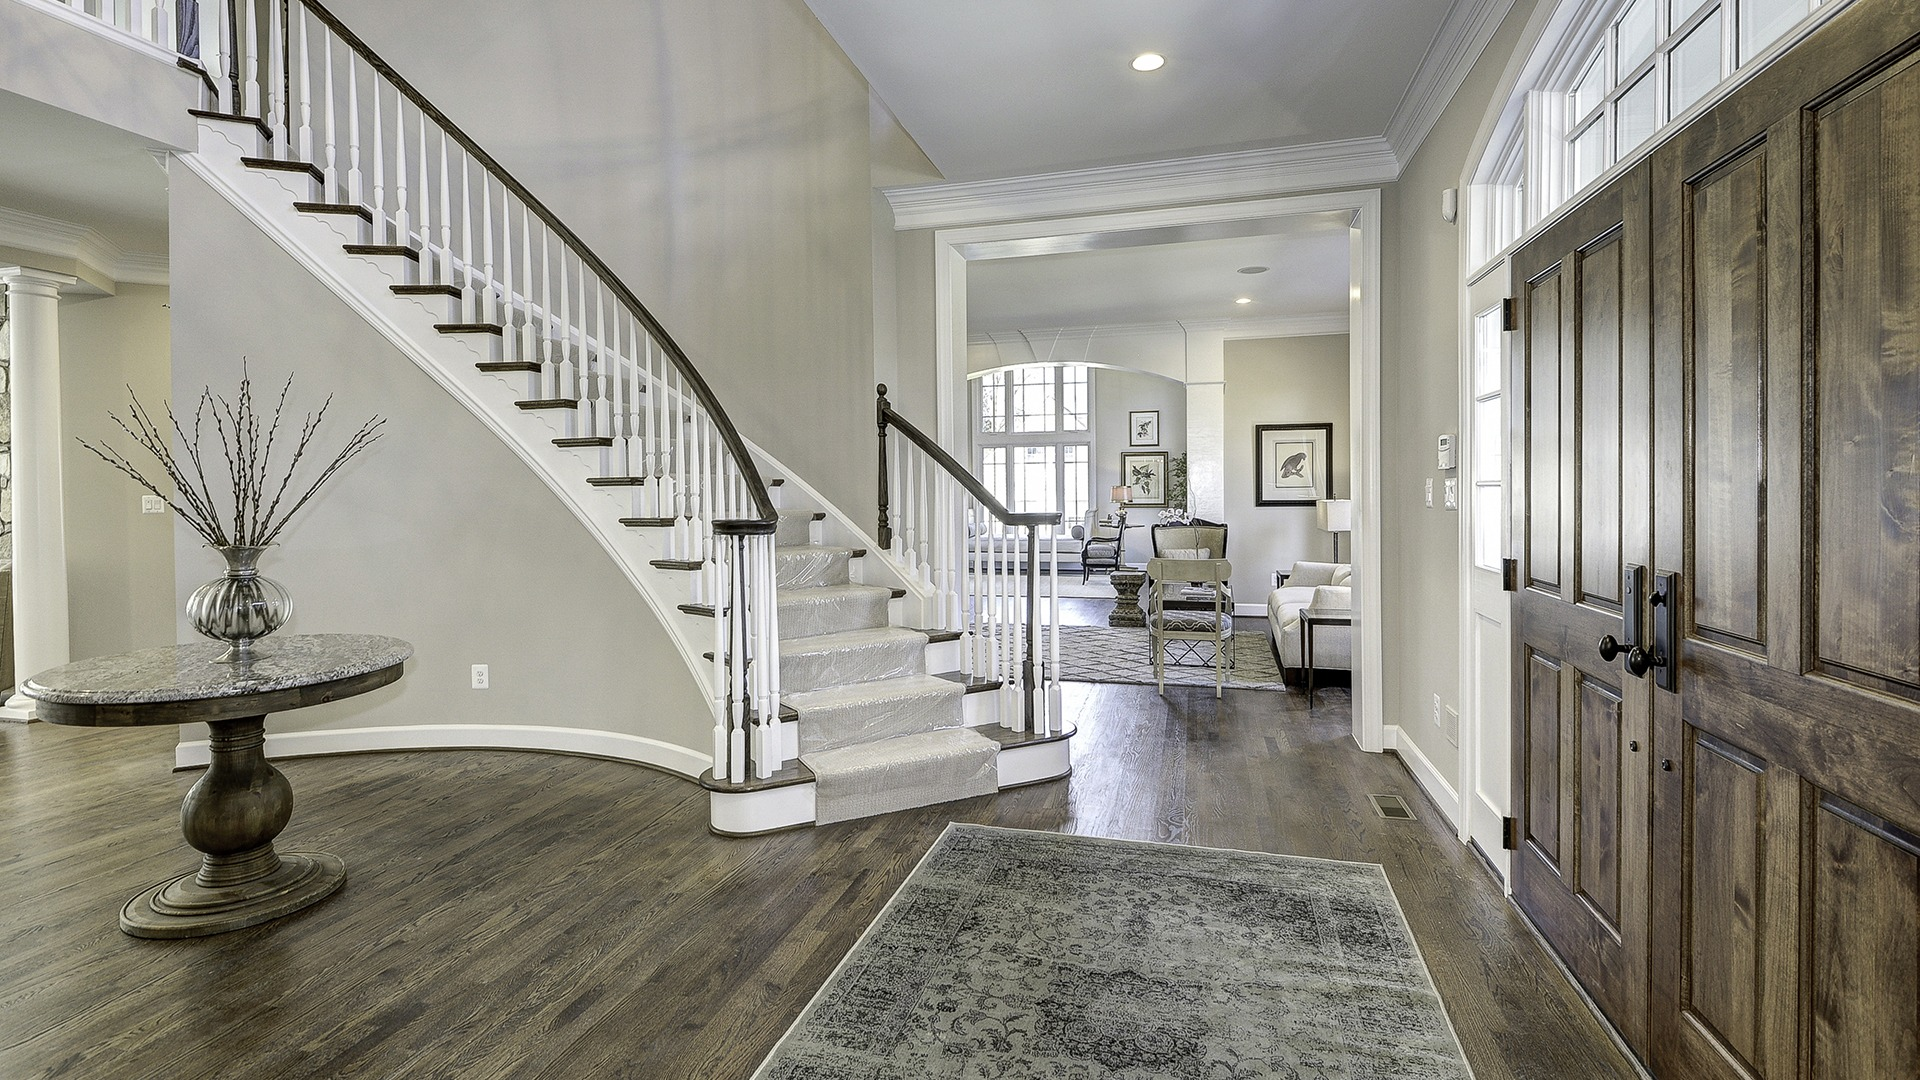 The Foyer in Carper Street, a Gulick | One custom home.